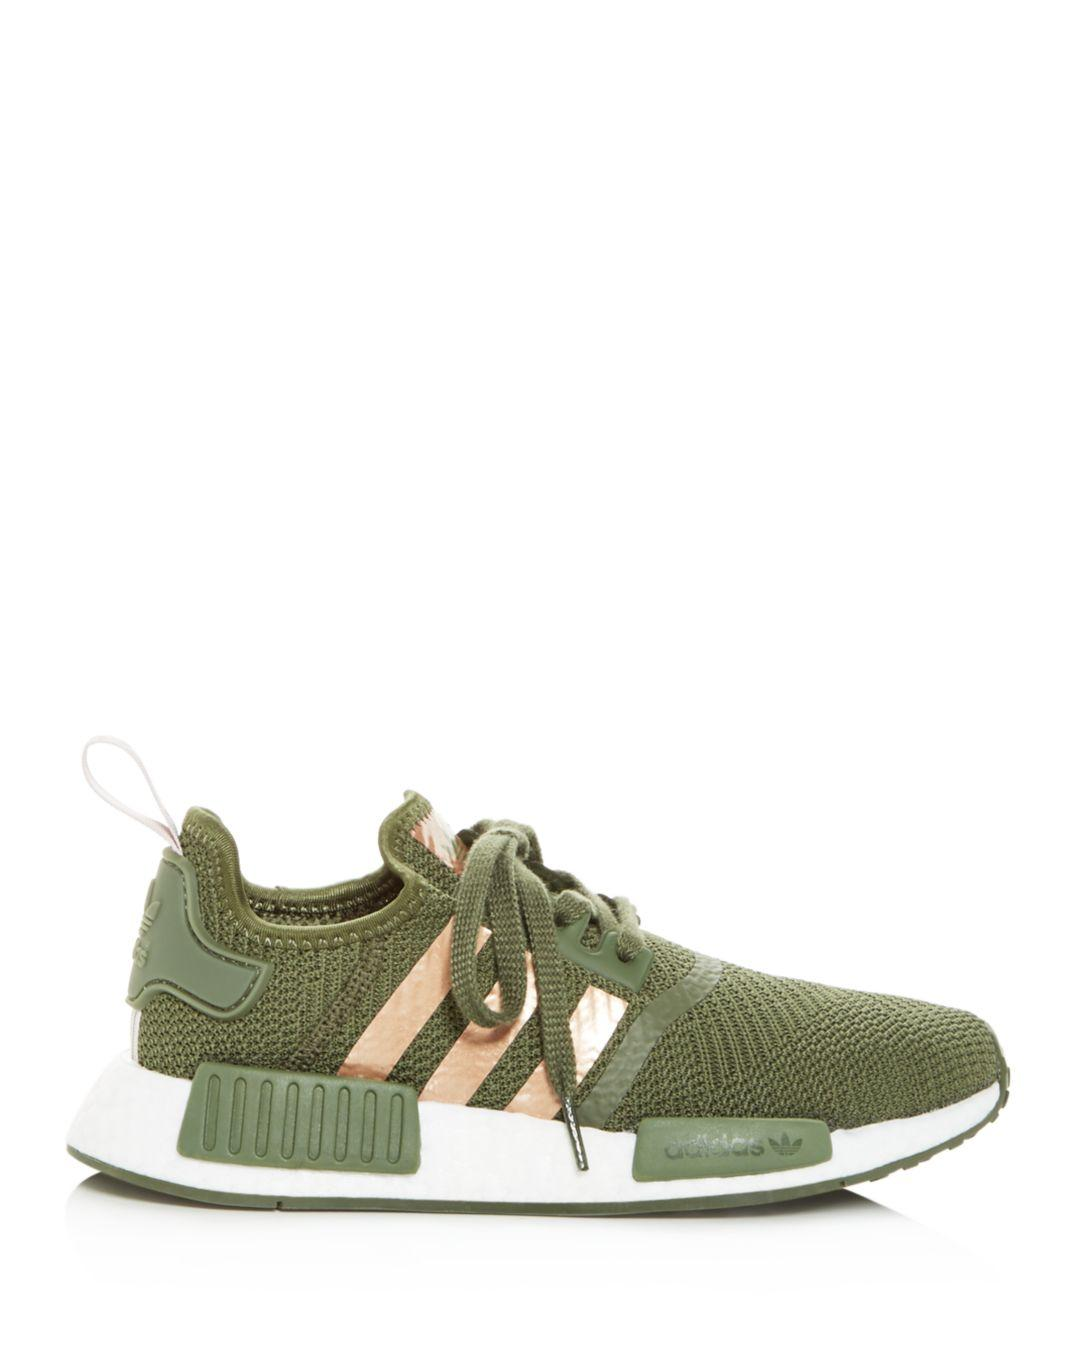 cb2a3e6f3a6bd Lyst - adidas Women s Nmd R1 Knit Lace Up Sneakers in Green